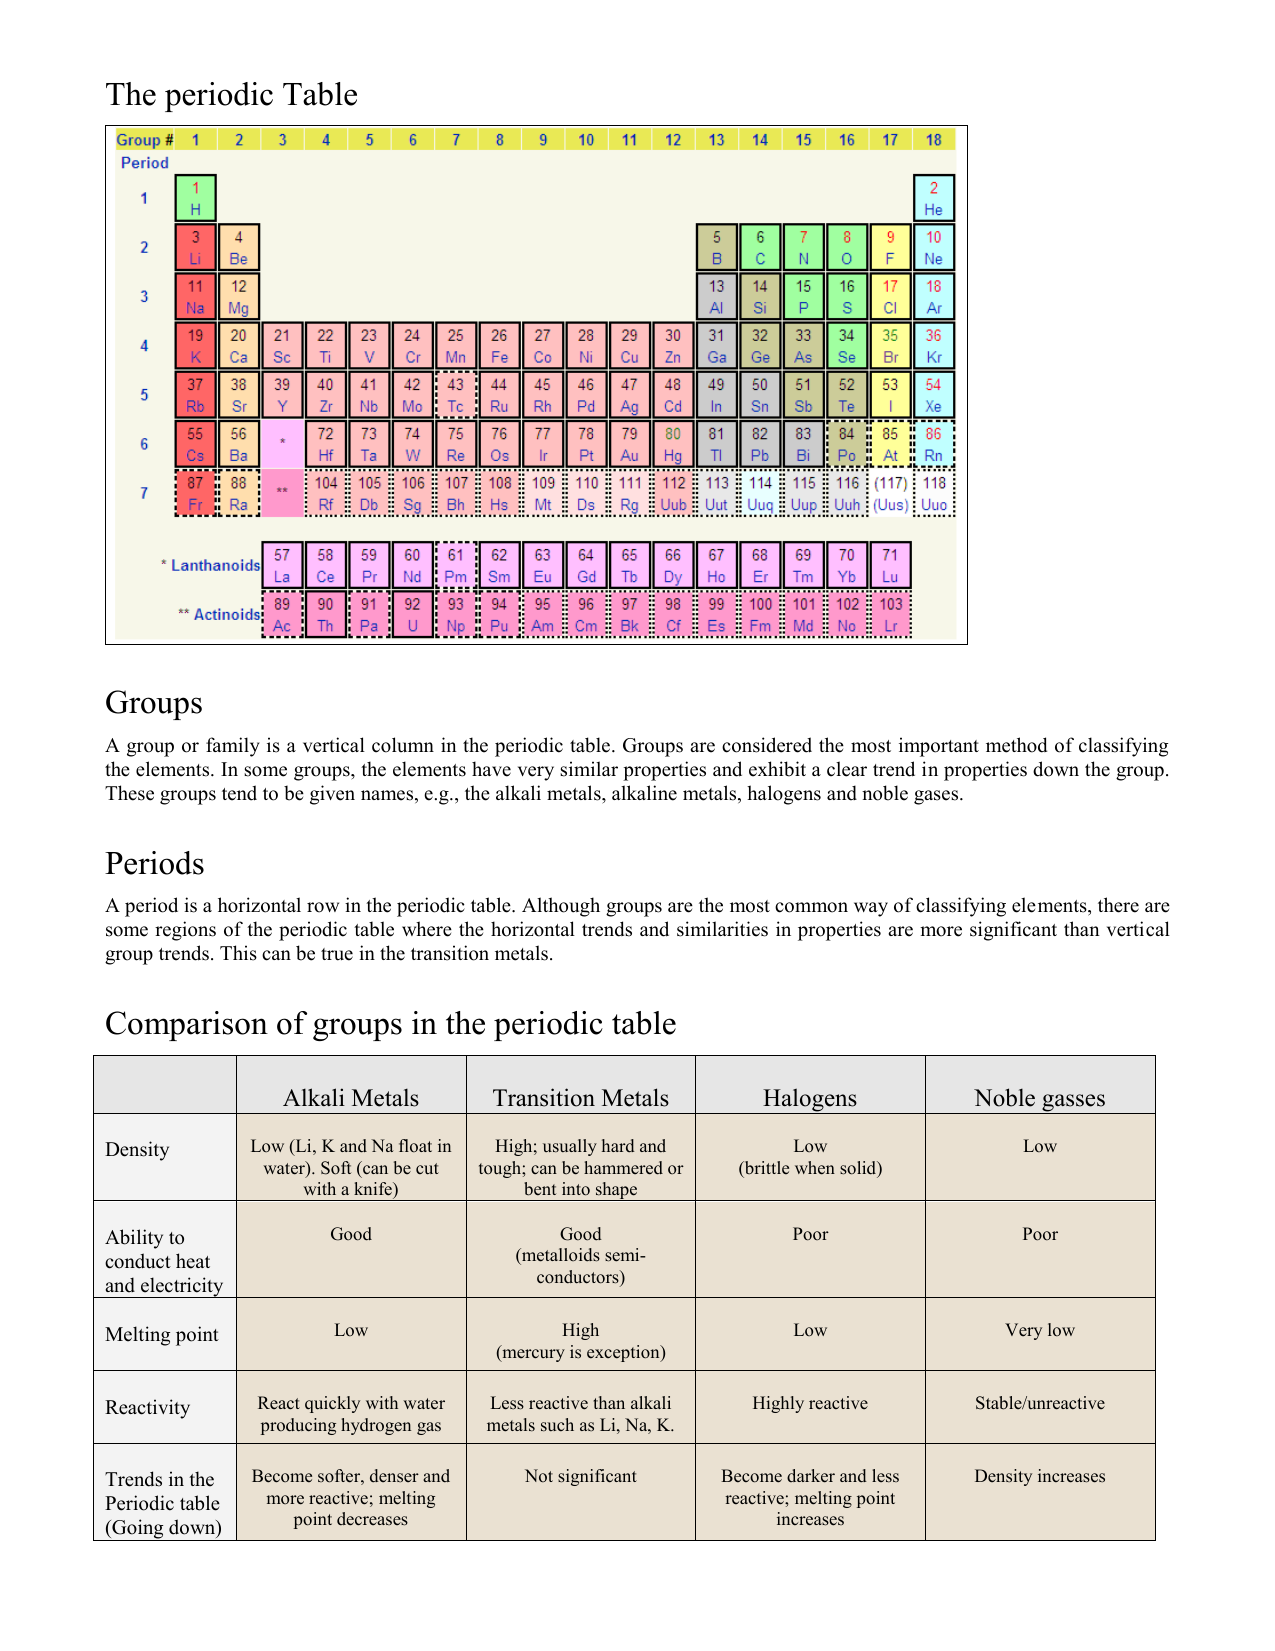 General trends in the periodic table images periodic table images group trends in the periodic table images periodic table images group trends in the periodic table gamestrikefo Gallery